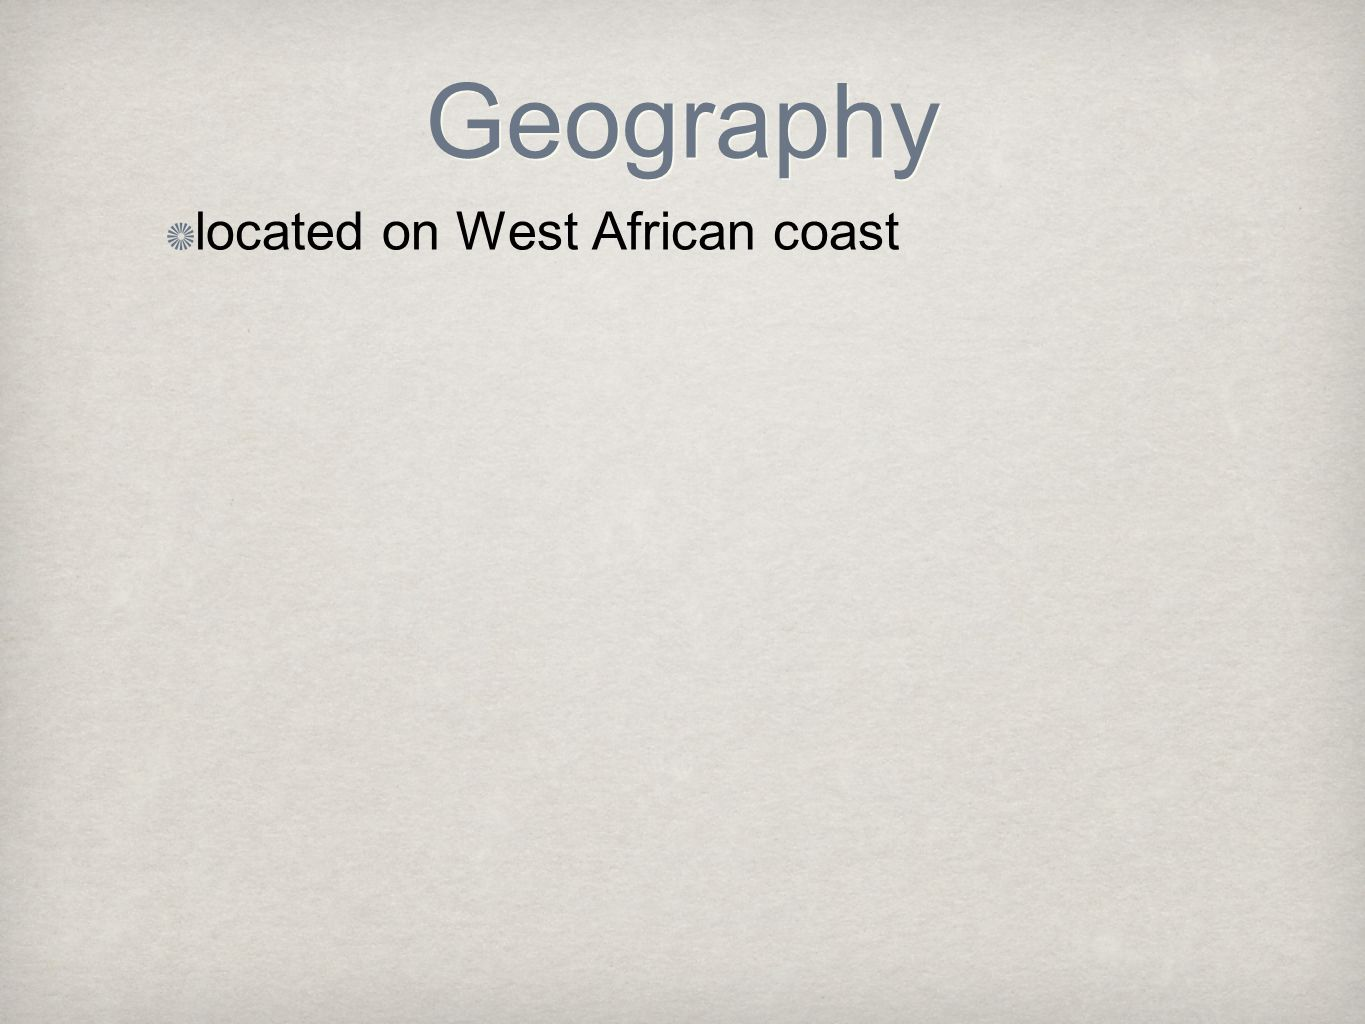 located on West African coast